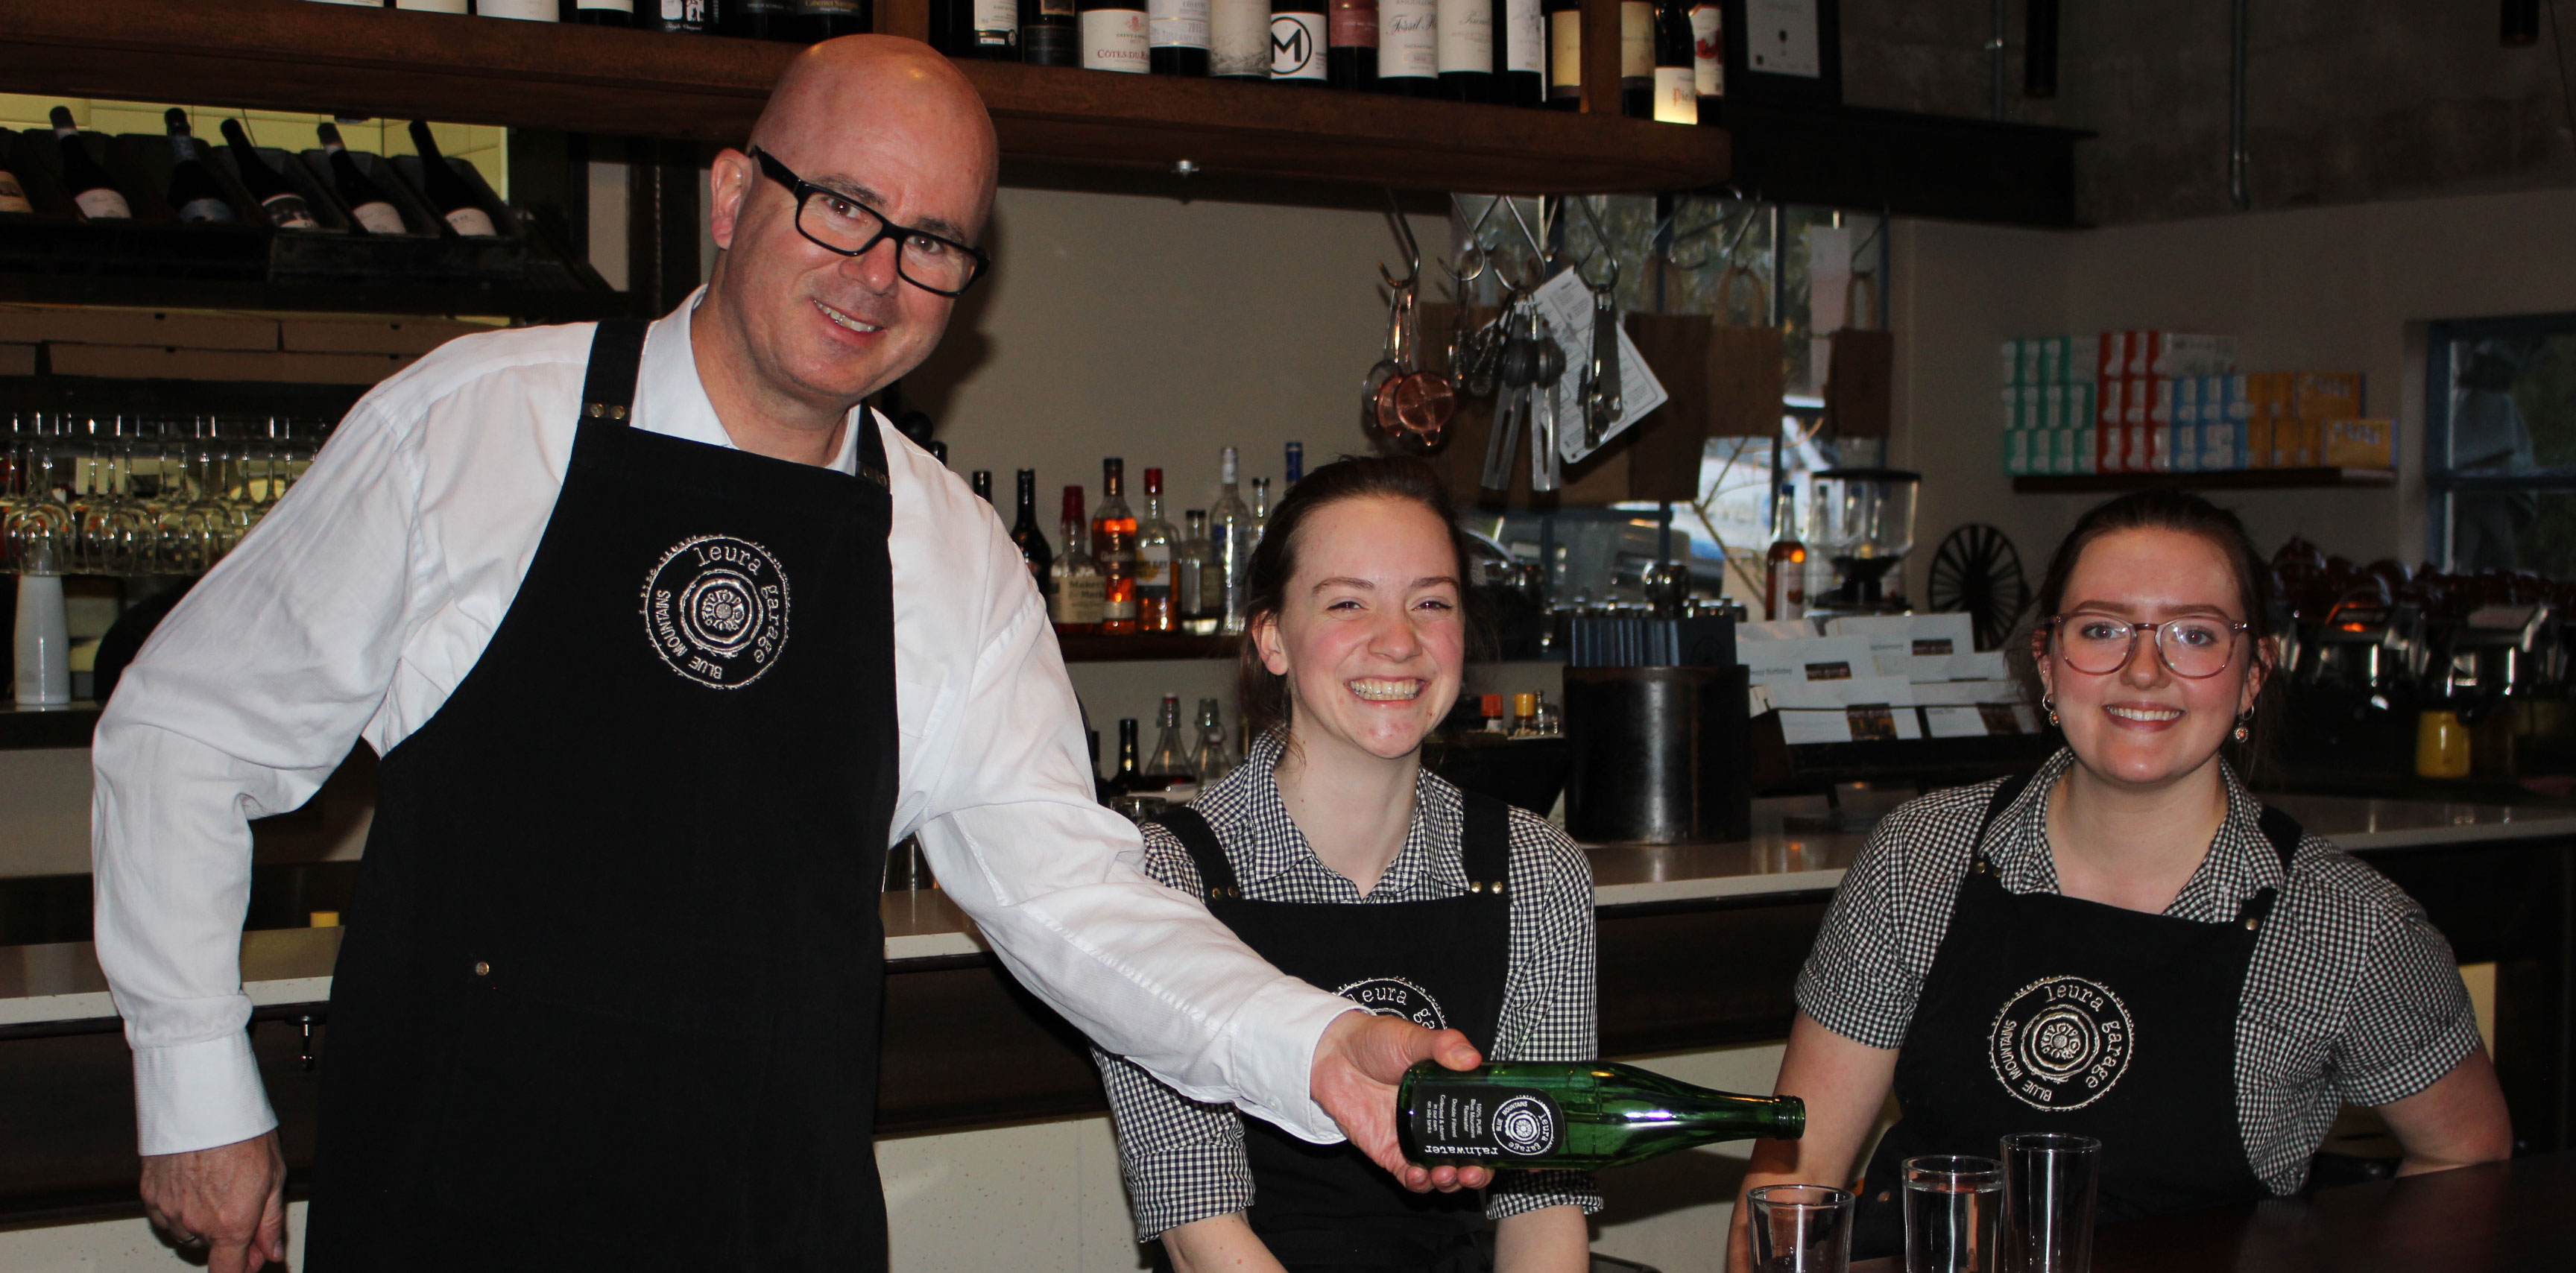 Mayor Mark Greenhill with Caitlin Schultz and Beth Coggins, at Leura Garage Café and Restaurant, which is featured in the experience trails.